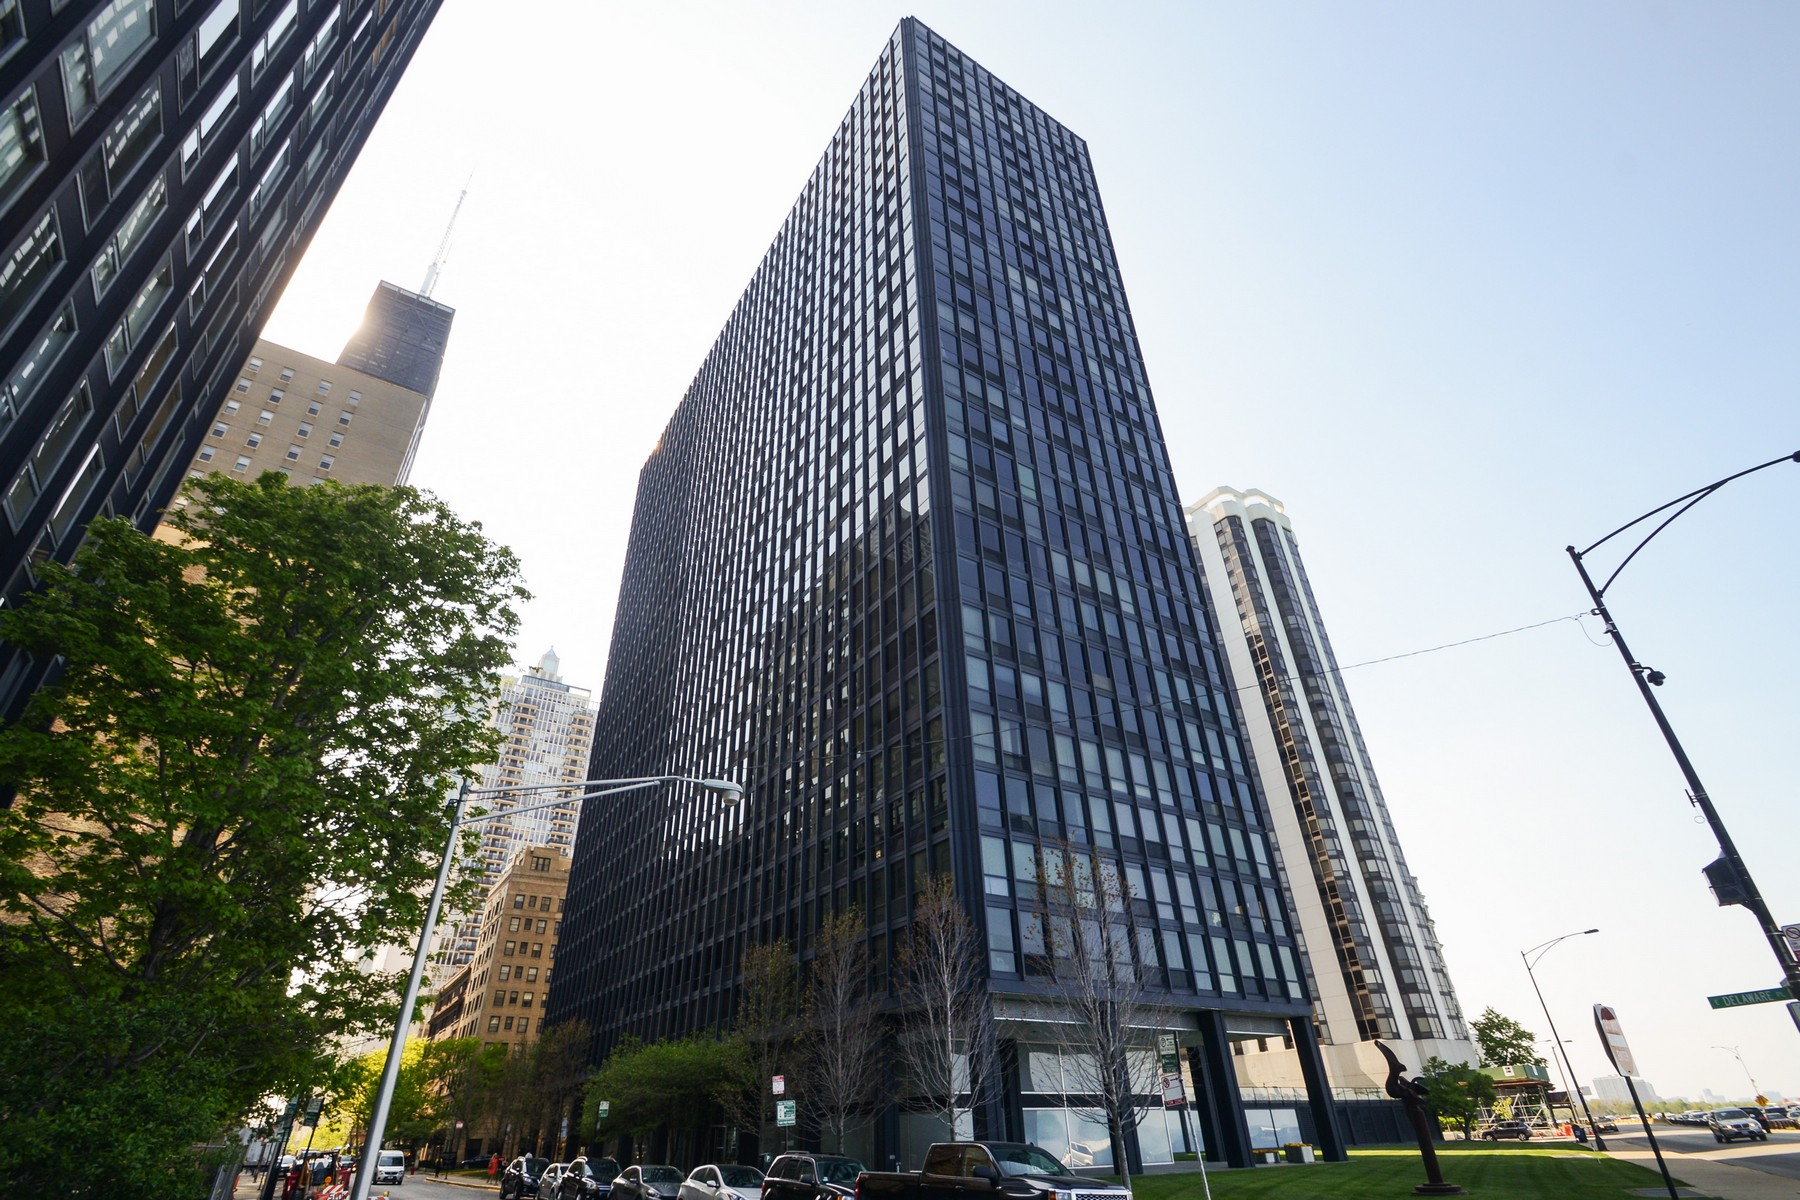 단독 가정 주택 용 매매 에 Amazing High Floor Unit in Miles Van Der Rohe Building 900 N Lake Shore Drive Unit 2212 Near North Side, Chicago, 일리노이즈, 60611 미국